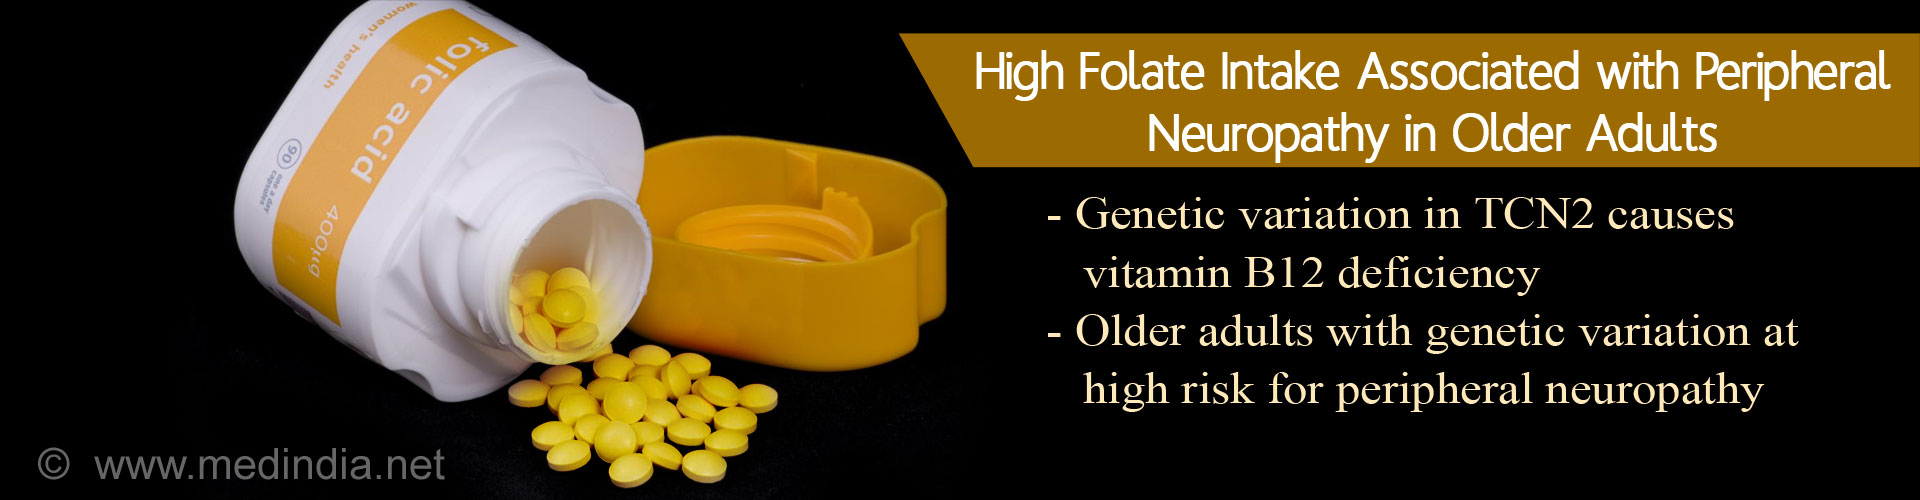 Excess Folate Intake Associated With Peripheral Neuropathy In Older Adults